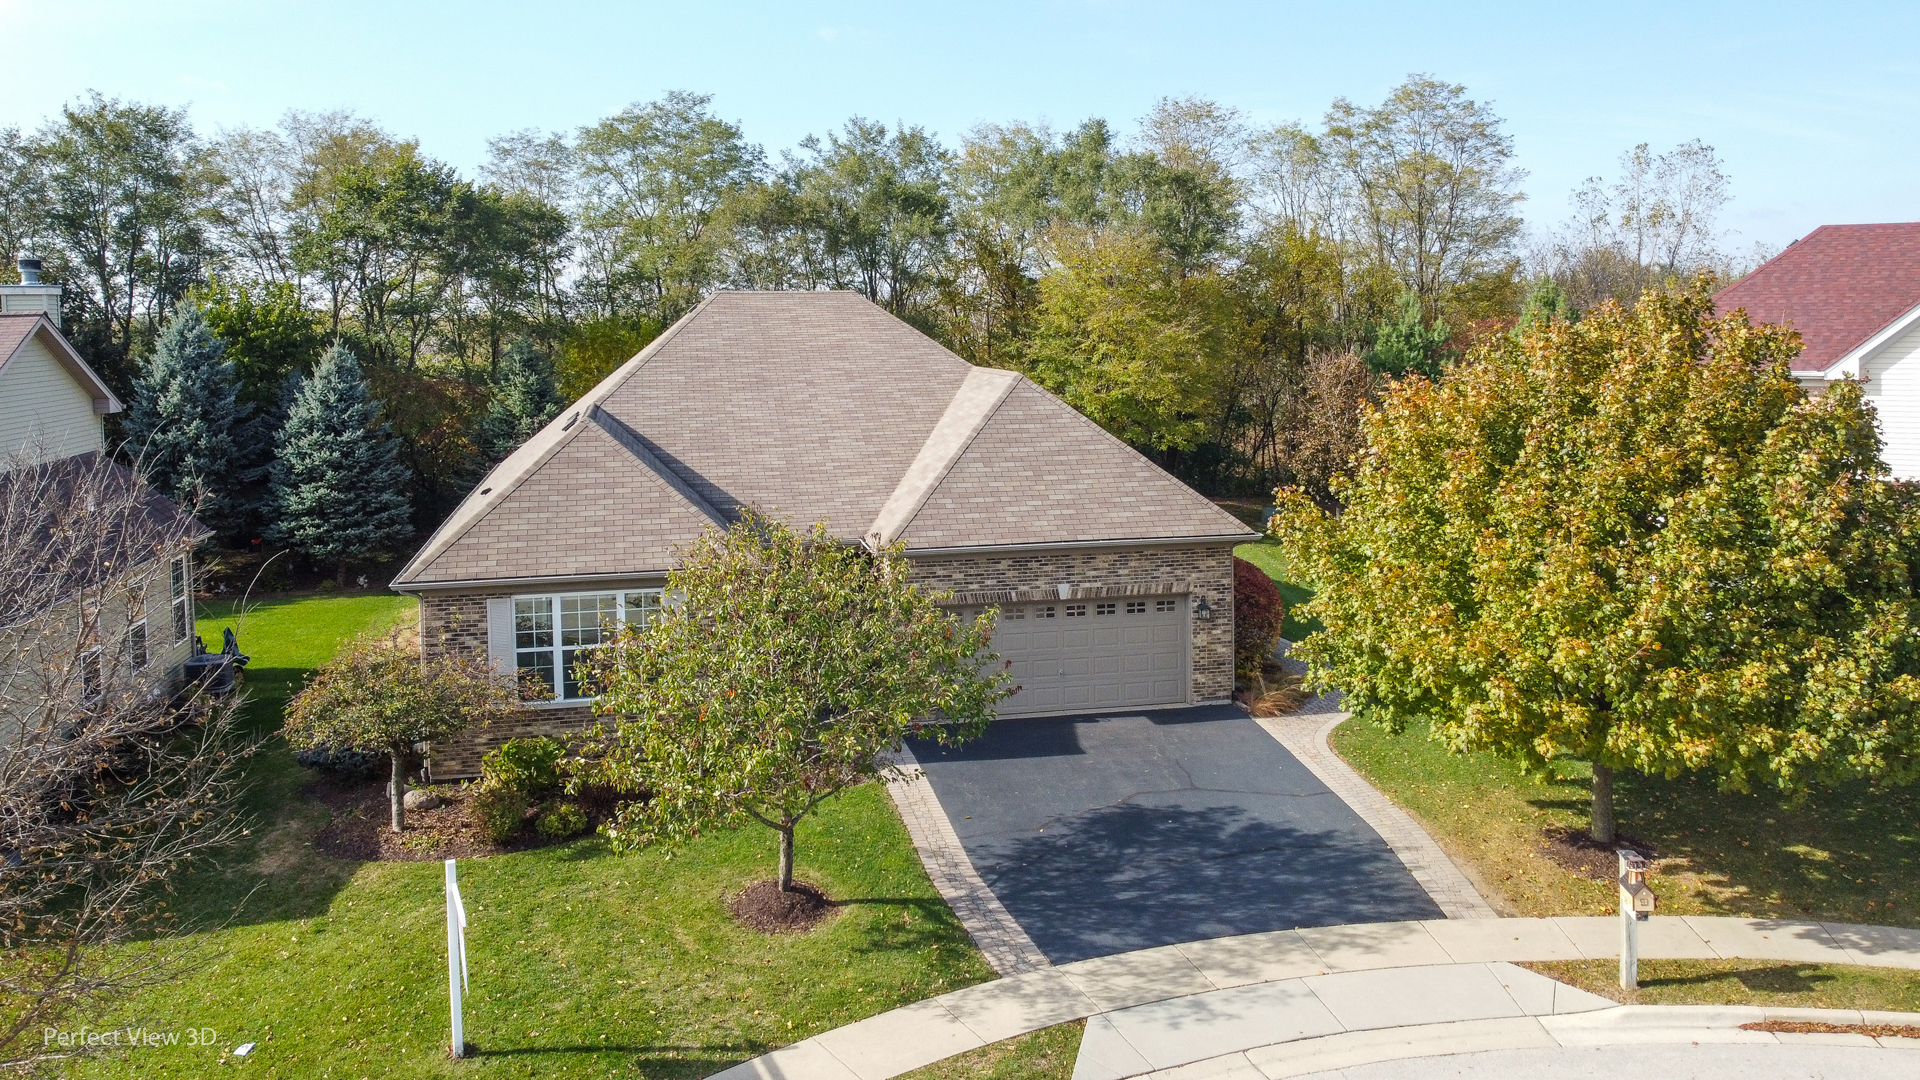 Photo for 808 Beech Drive, Elgin, IL 60120 (MLS # 10915343)